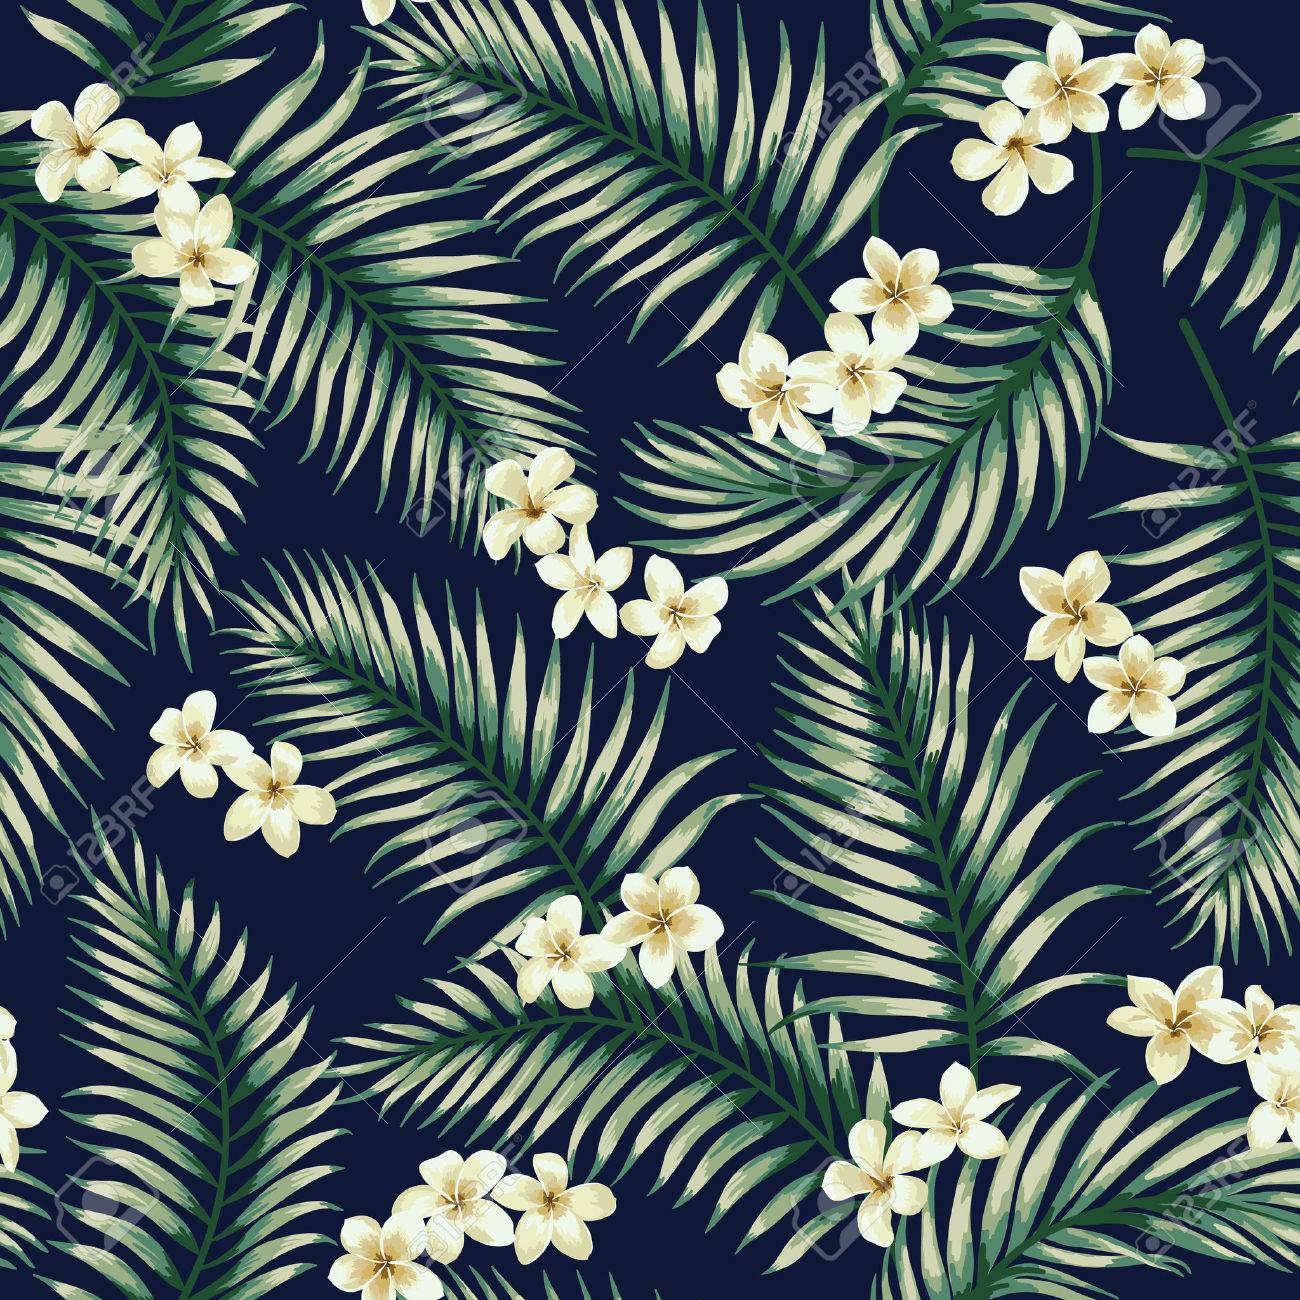 Seamless exotic pattern with tropical leaves and flowers. Vector illustration. - 56800092